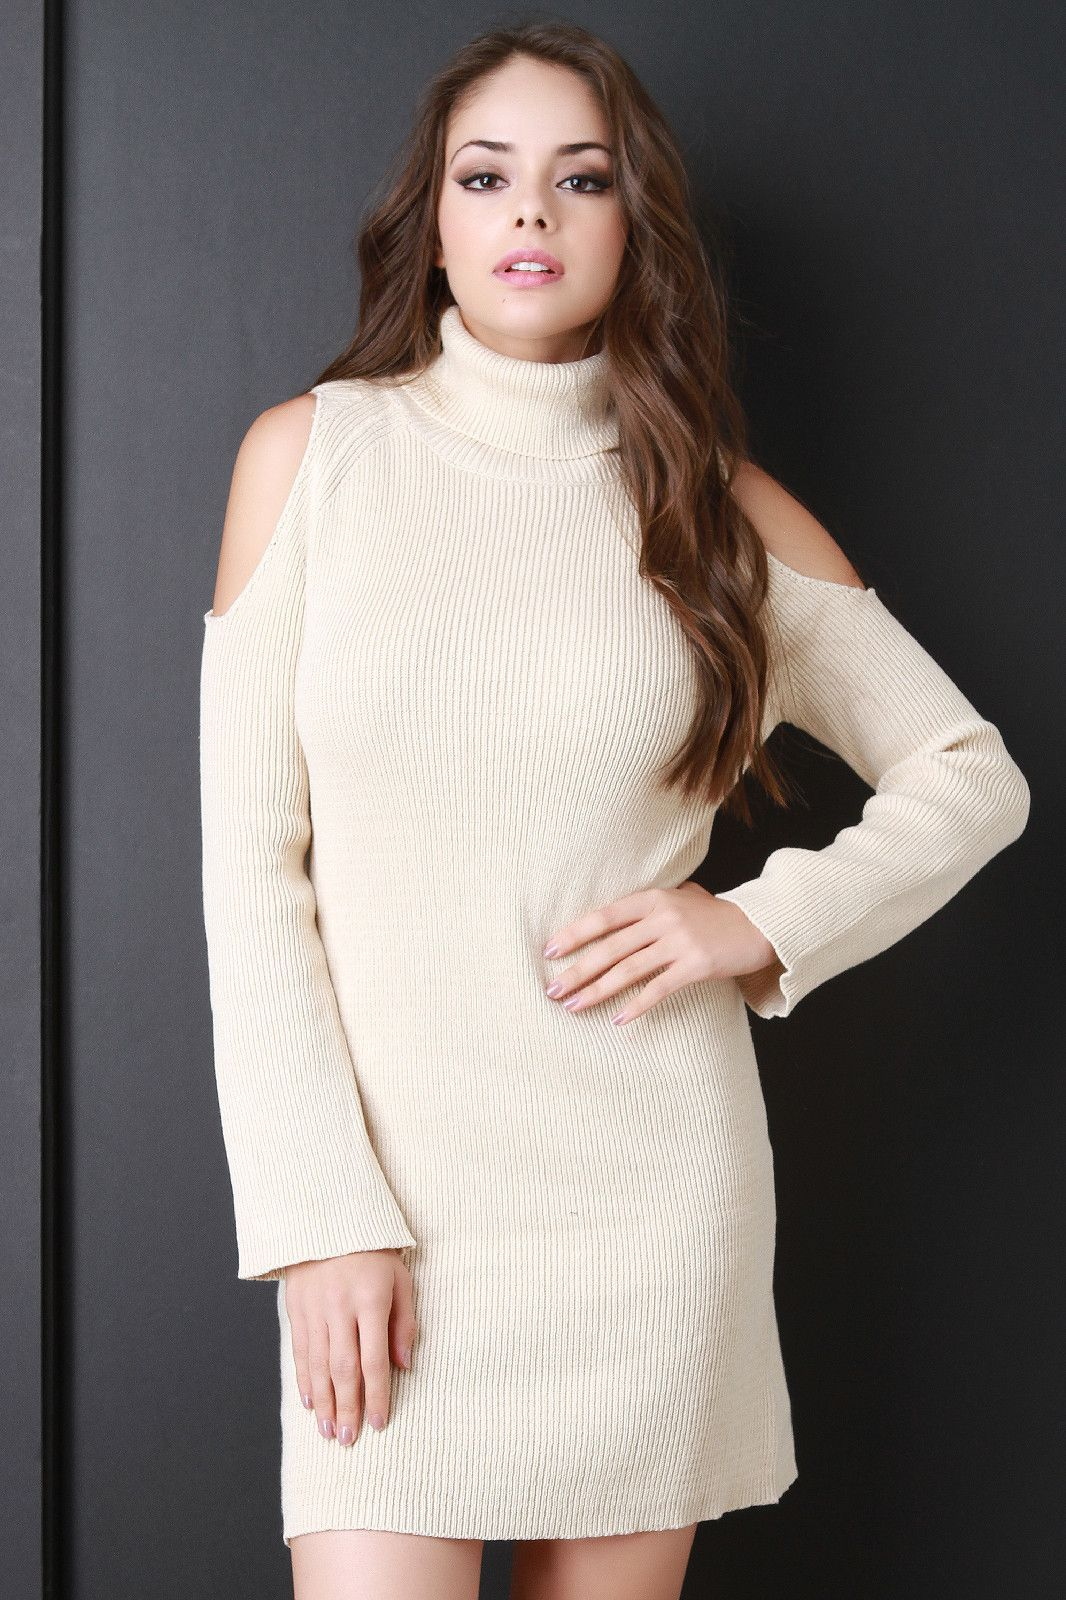 d17a989a7b4 Rib Knit Cold Shoulder Turtle Neck Sweater Dress